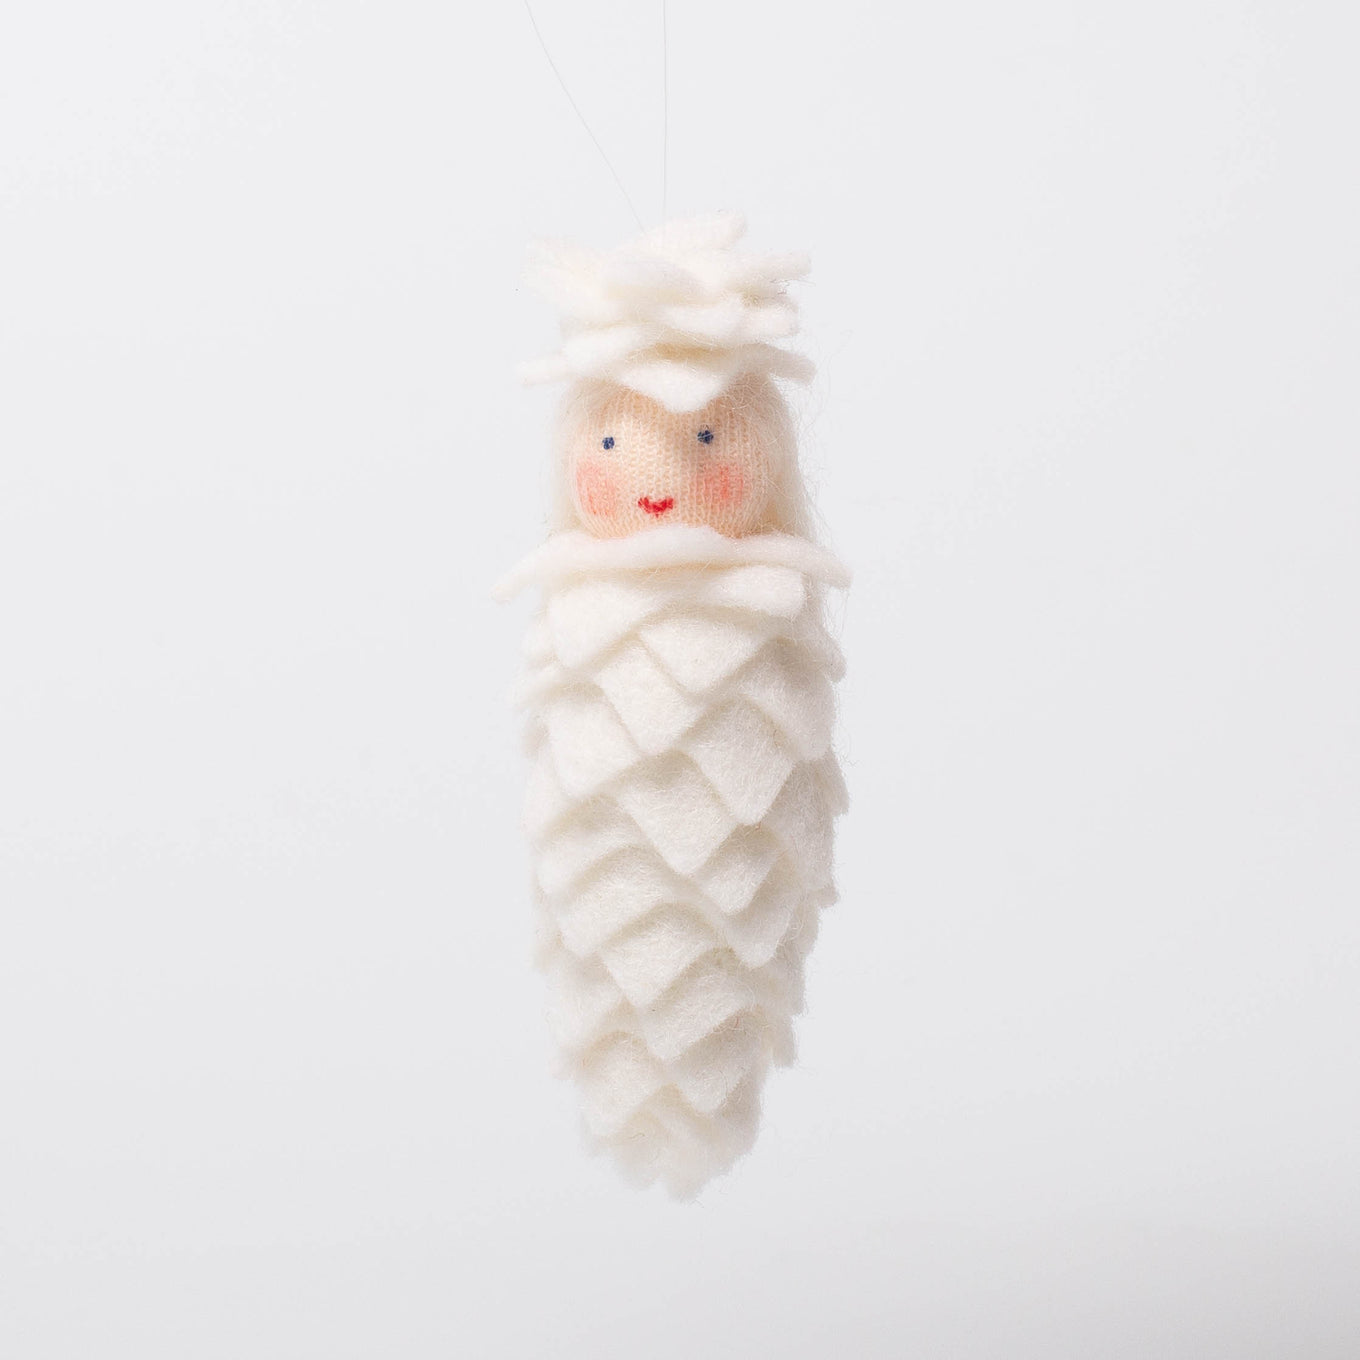 Pinecone white